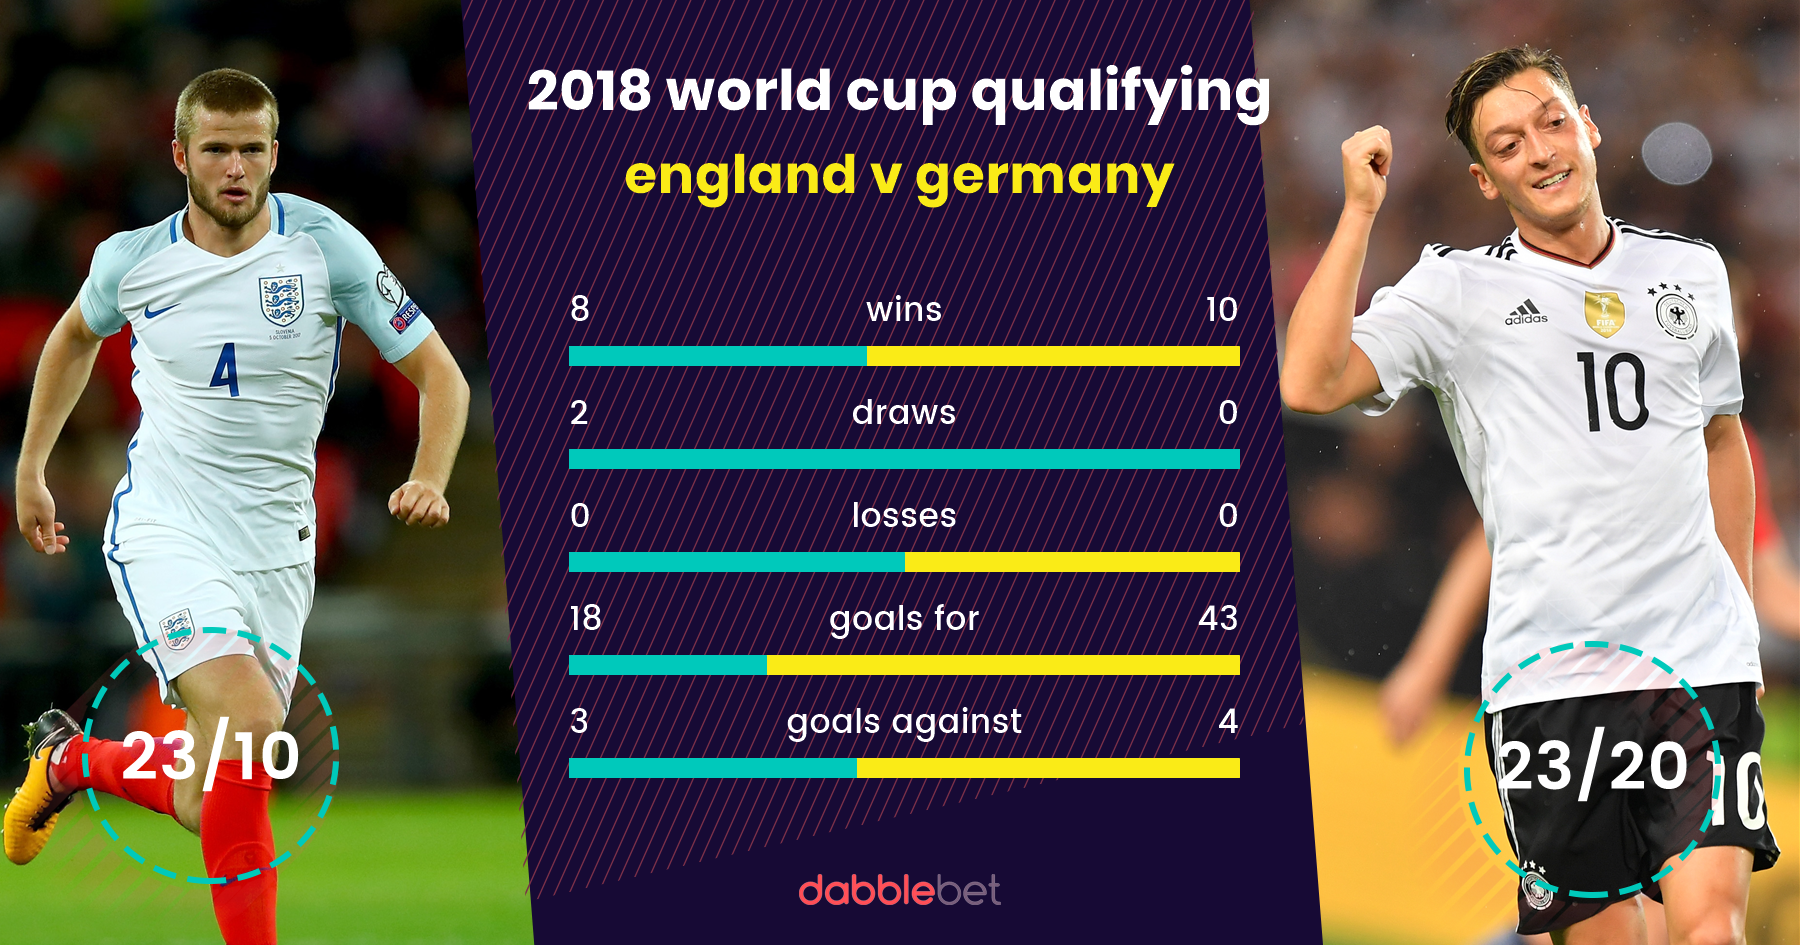 England Germany graphic